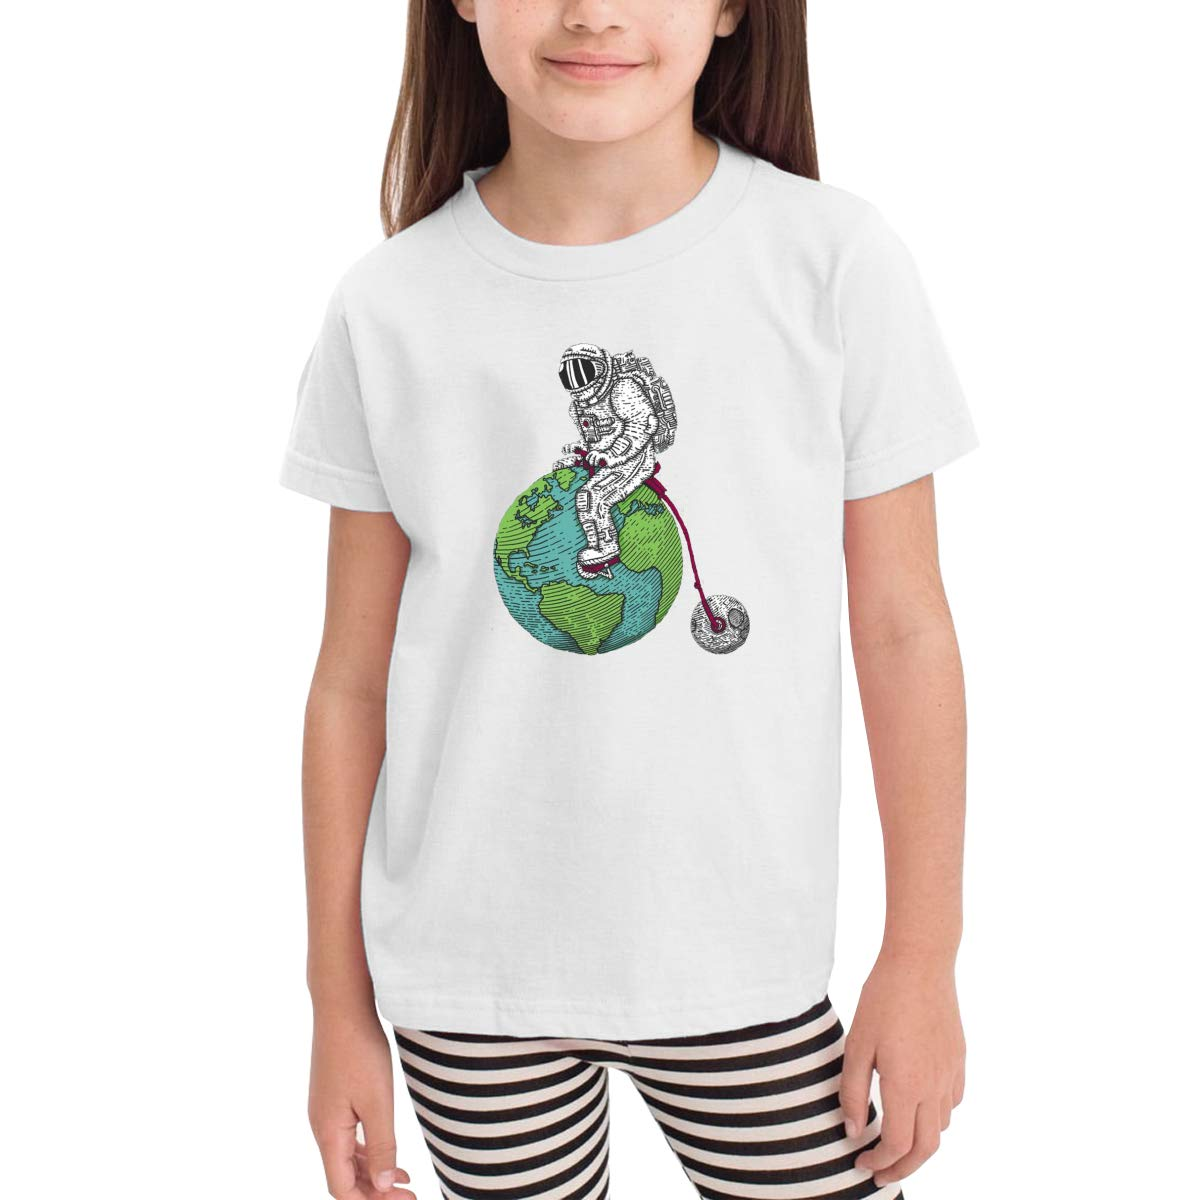 Astronaut Earth Novelty Cotton T Shirt Personality Black Tee for Toddler Kids Boys Girls